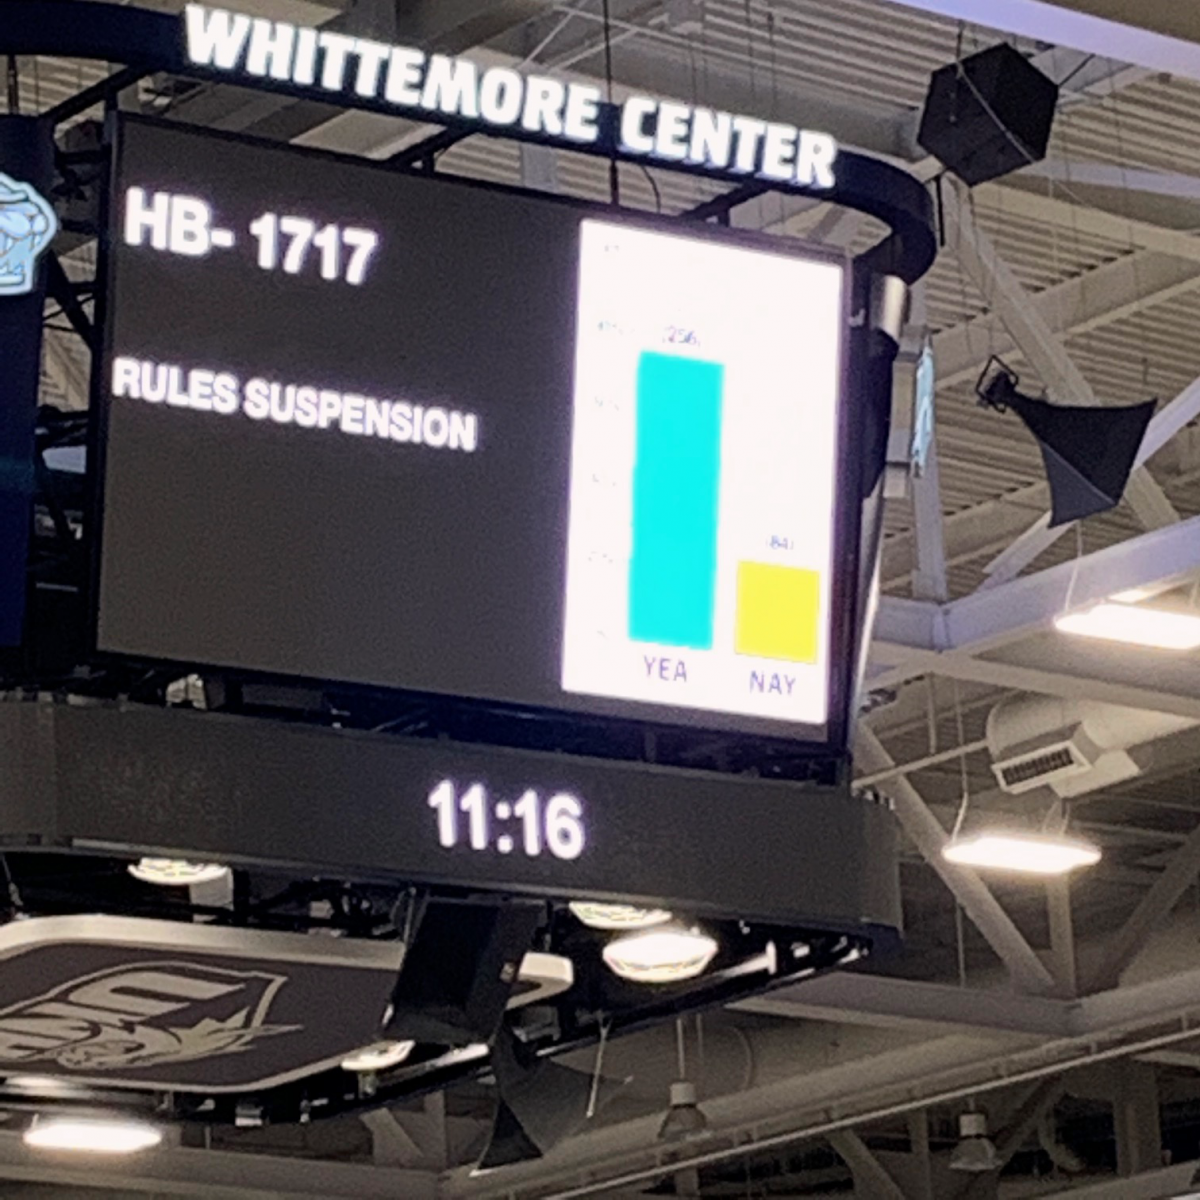 A photo of the scoreboard at the Whittemore Center Arena displaying a vote by the New Hampshire House of Representatives on June 11, 2020. Photo by Terri Winters.